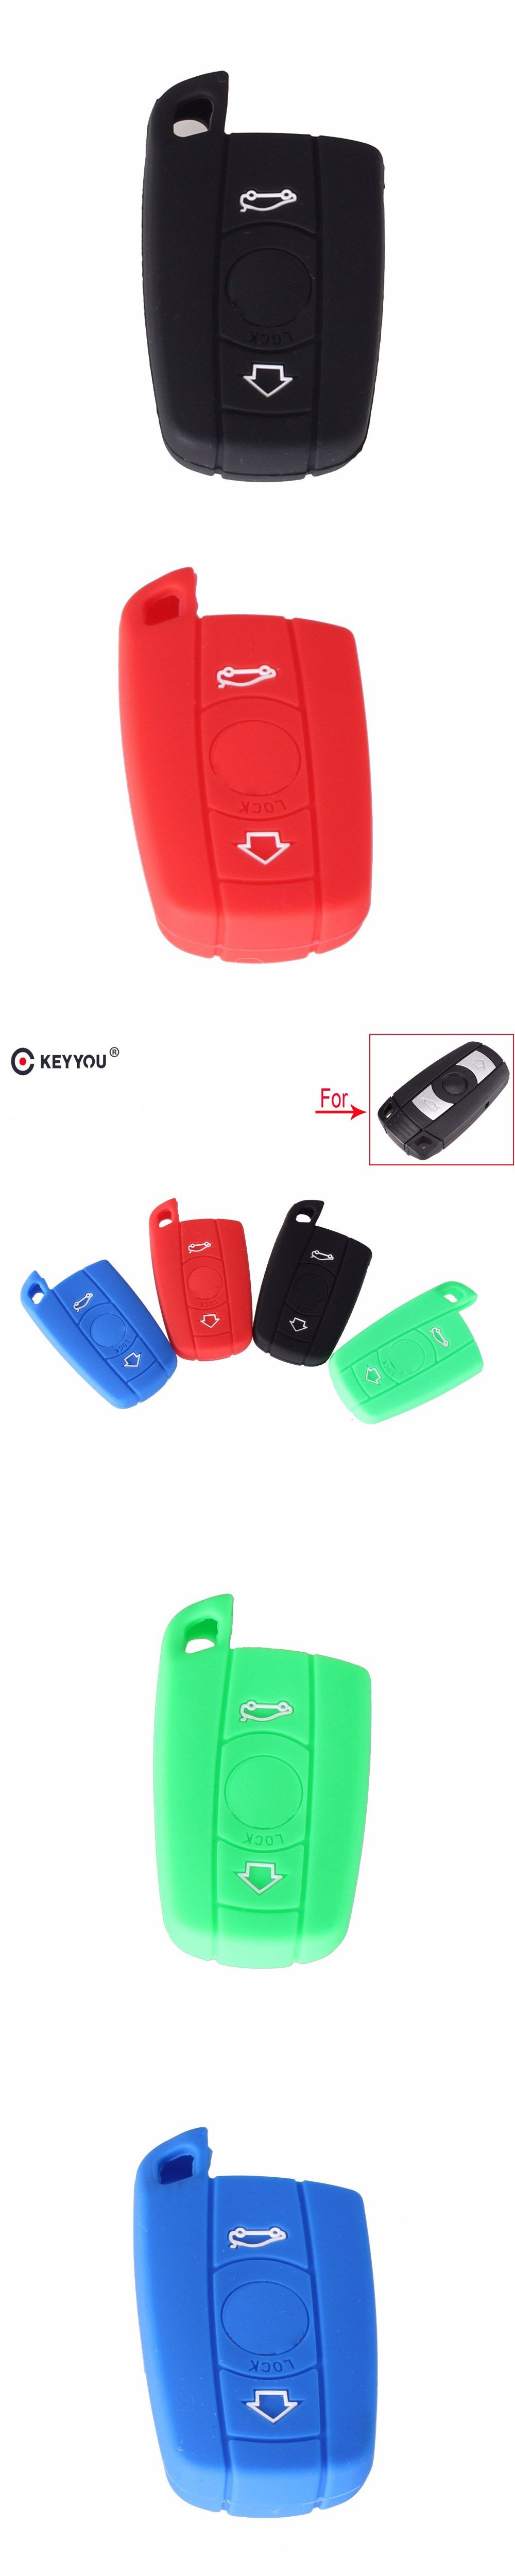 for cover button corolla nissan toyota accessories product car bmw case key bag